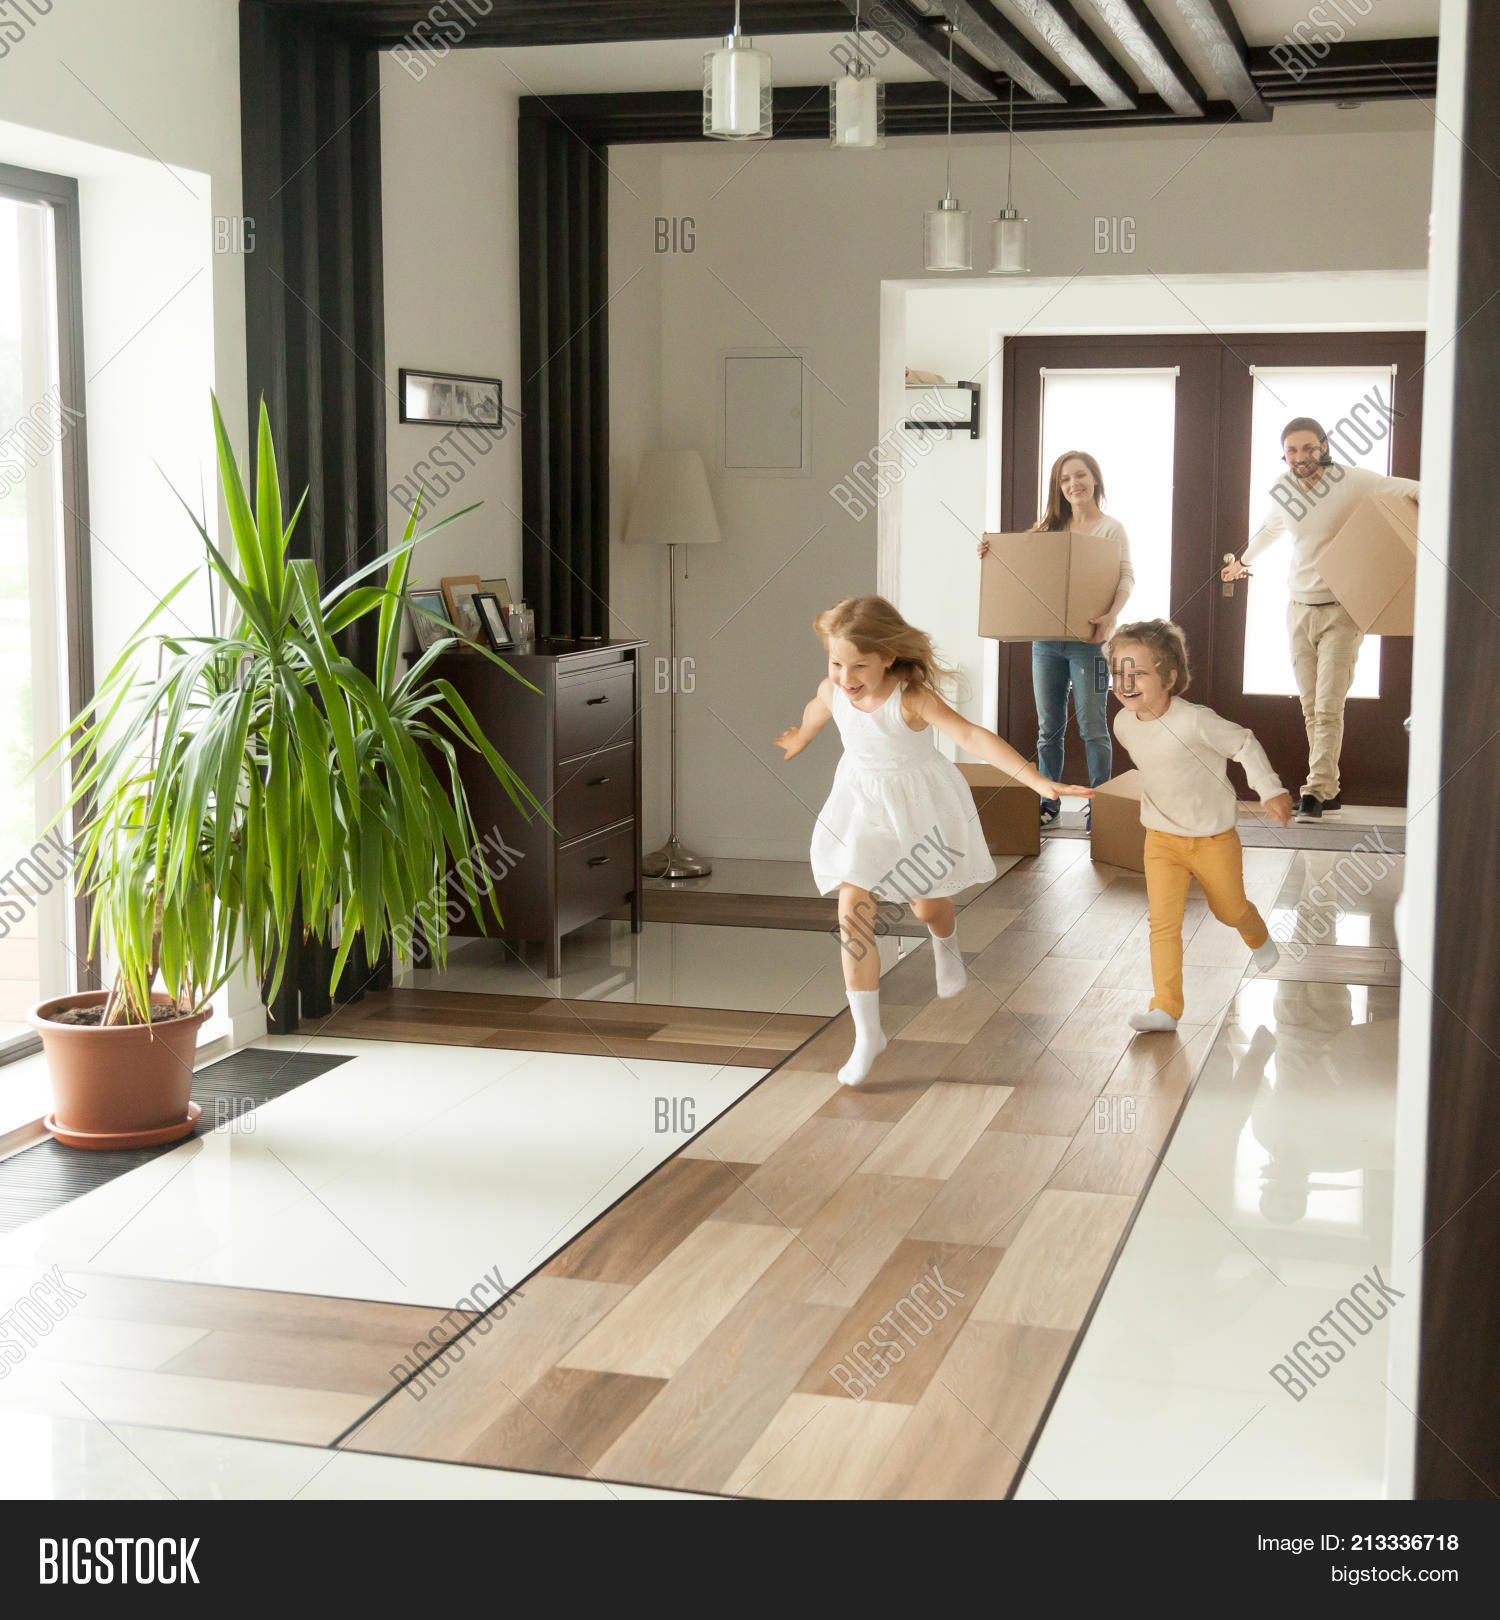 Home Interior Kids Playful Happy Kids Image Photo Free Trial Bigstock